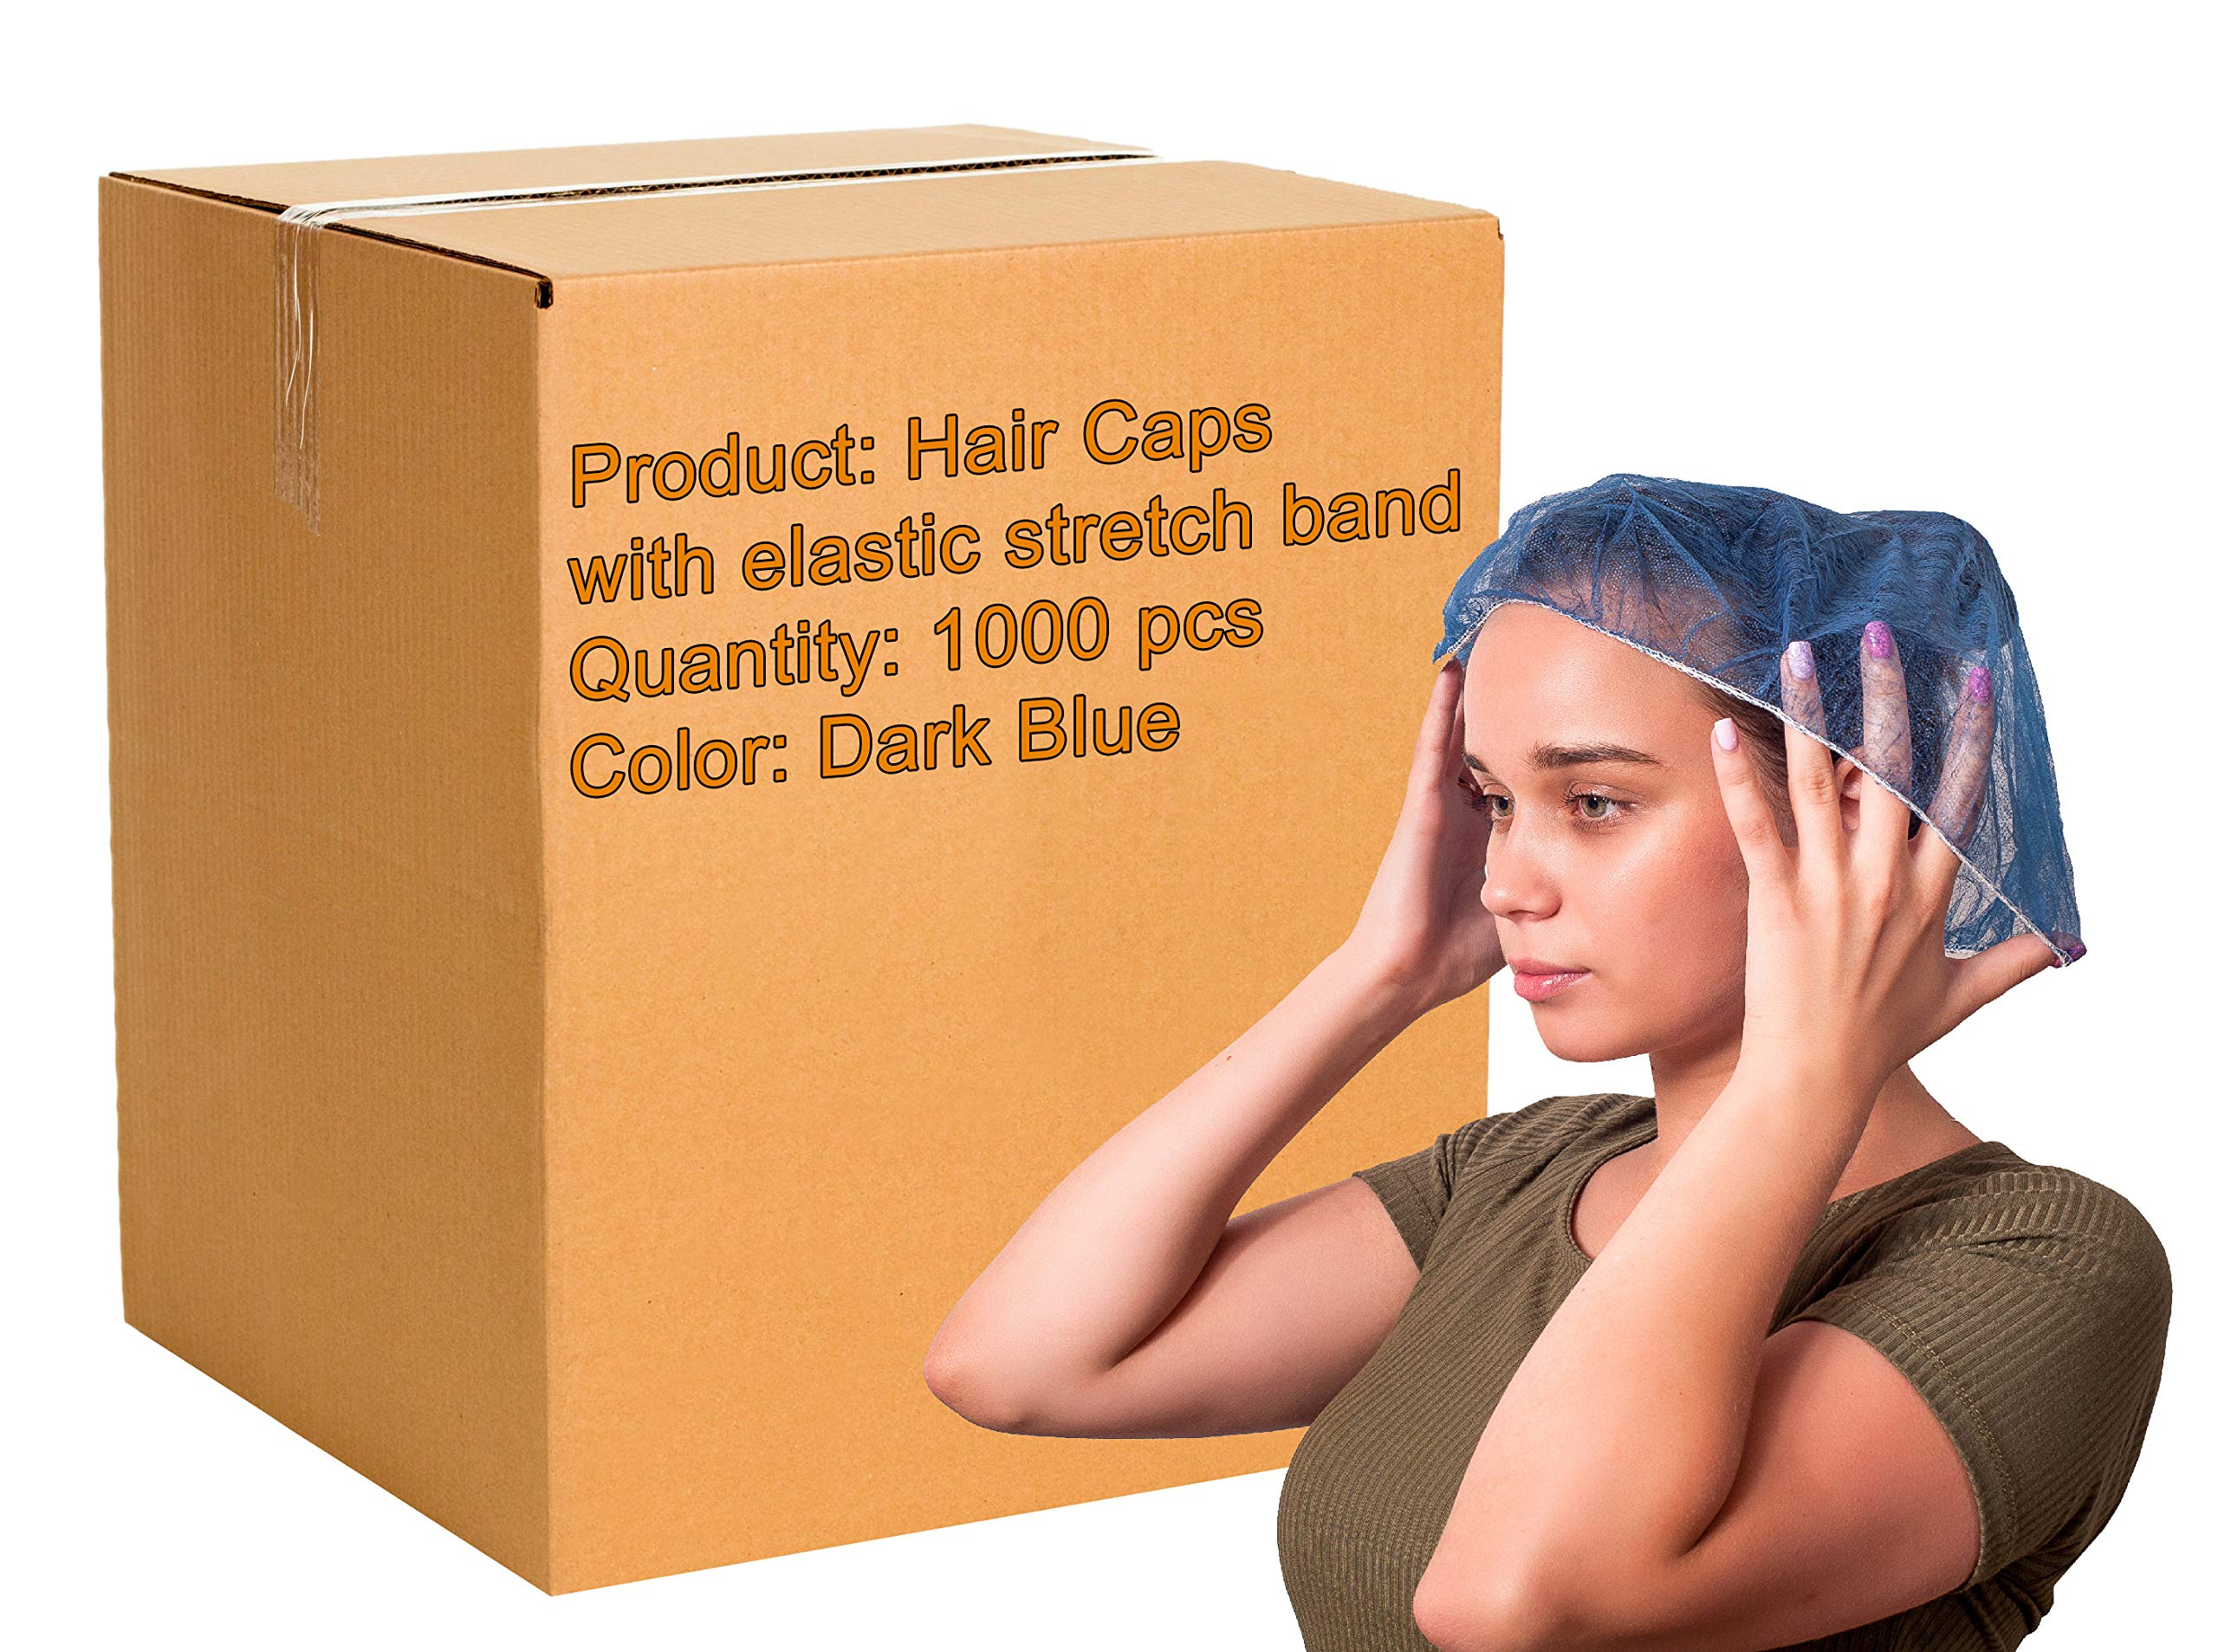 1000 Pack Dark Blue Bouffant Caps 21''. Hair Caps with elastic stretch band. Disposable Polypropylene Hats. Unisex Protective Hair Covers for food service, medical use. Breathable, Lightweight. by ABC Pack & Supply